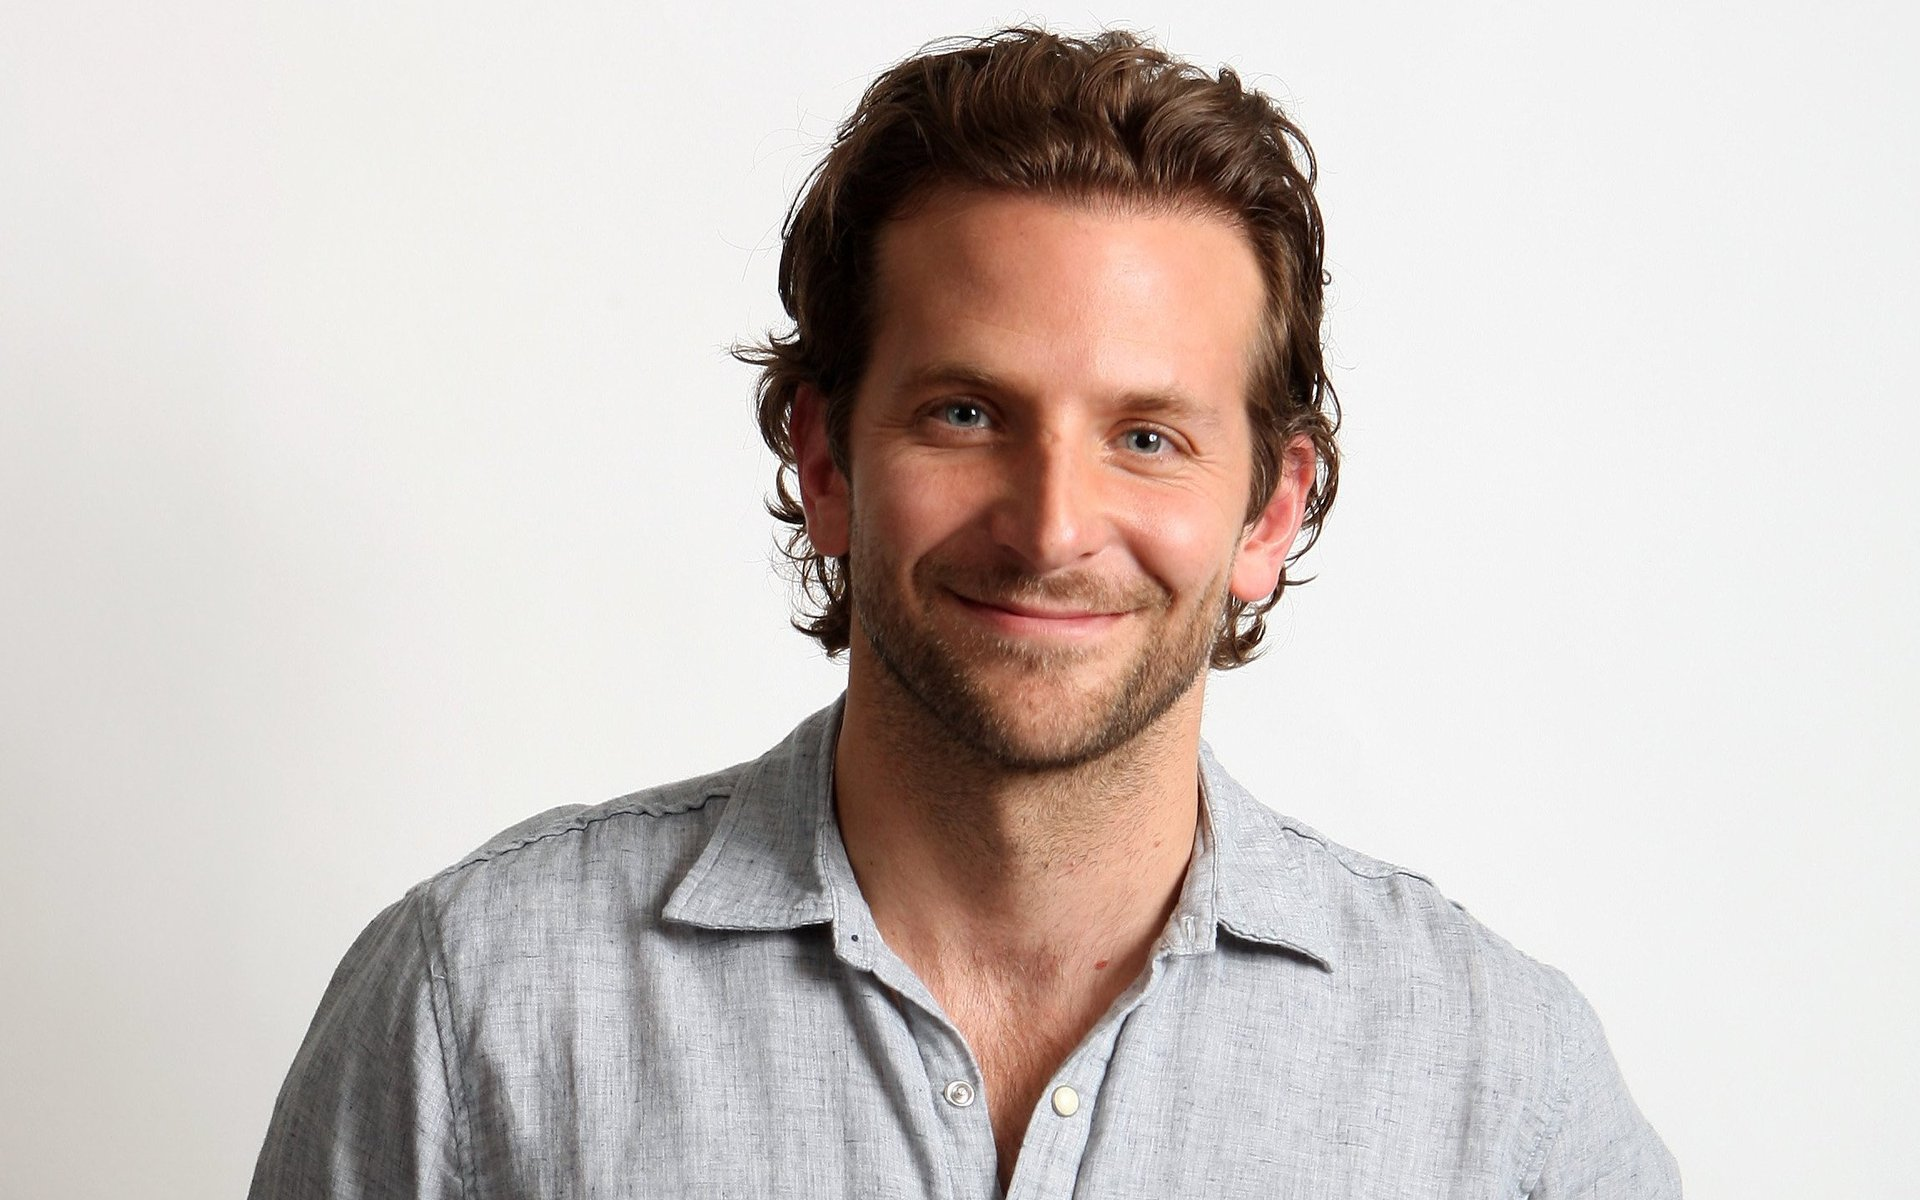 Bradley Cooper hd wallpaper Wallpaper